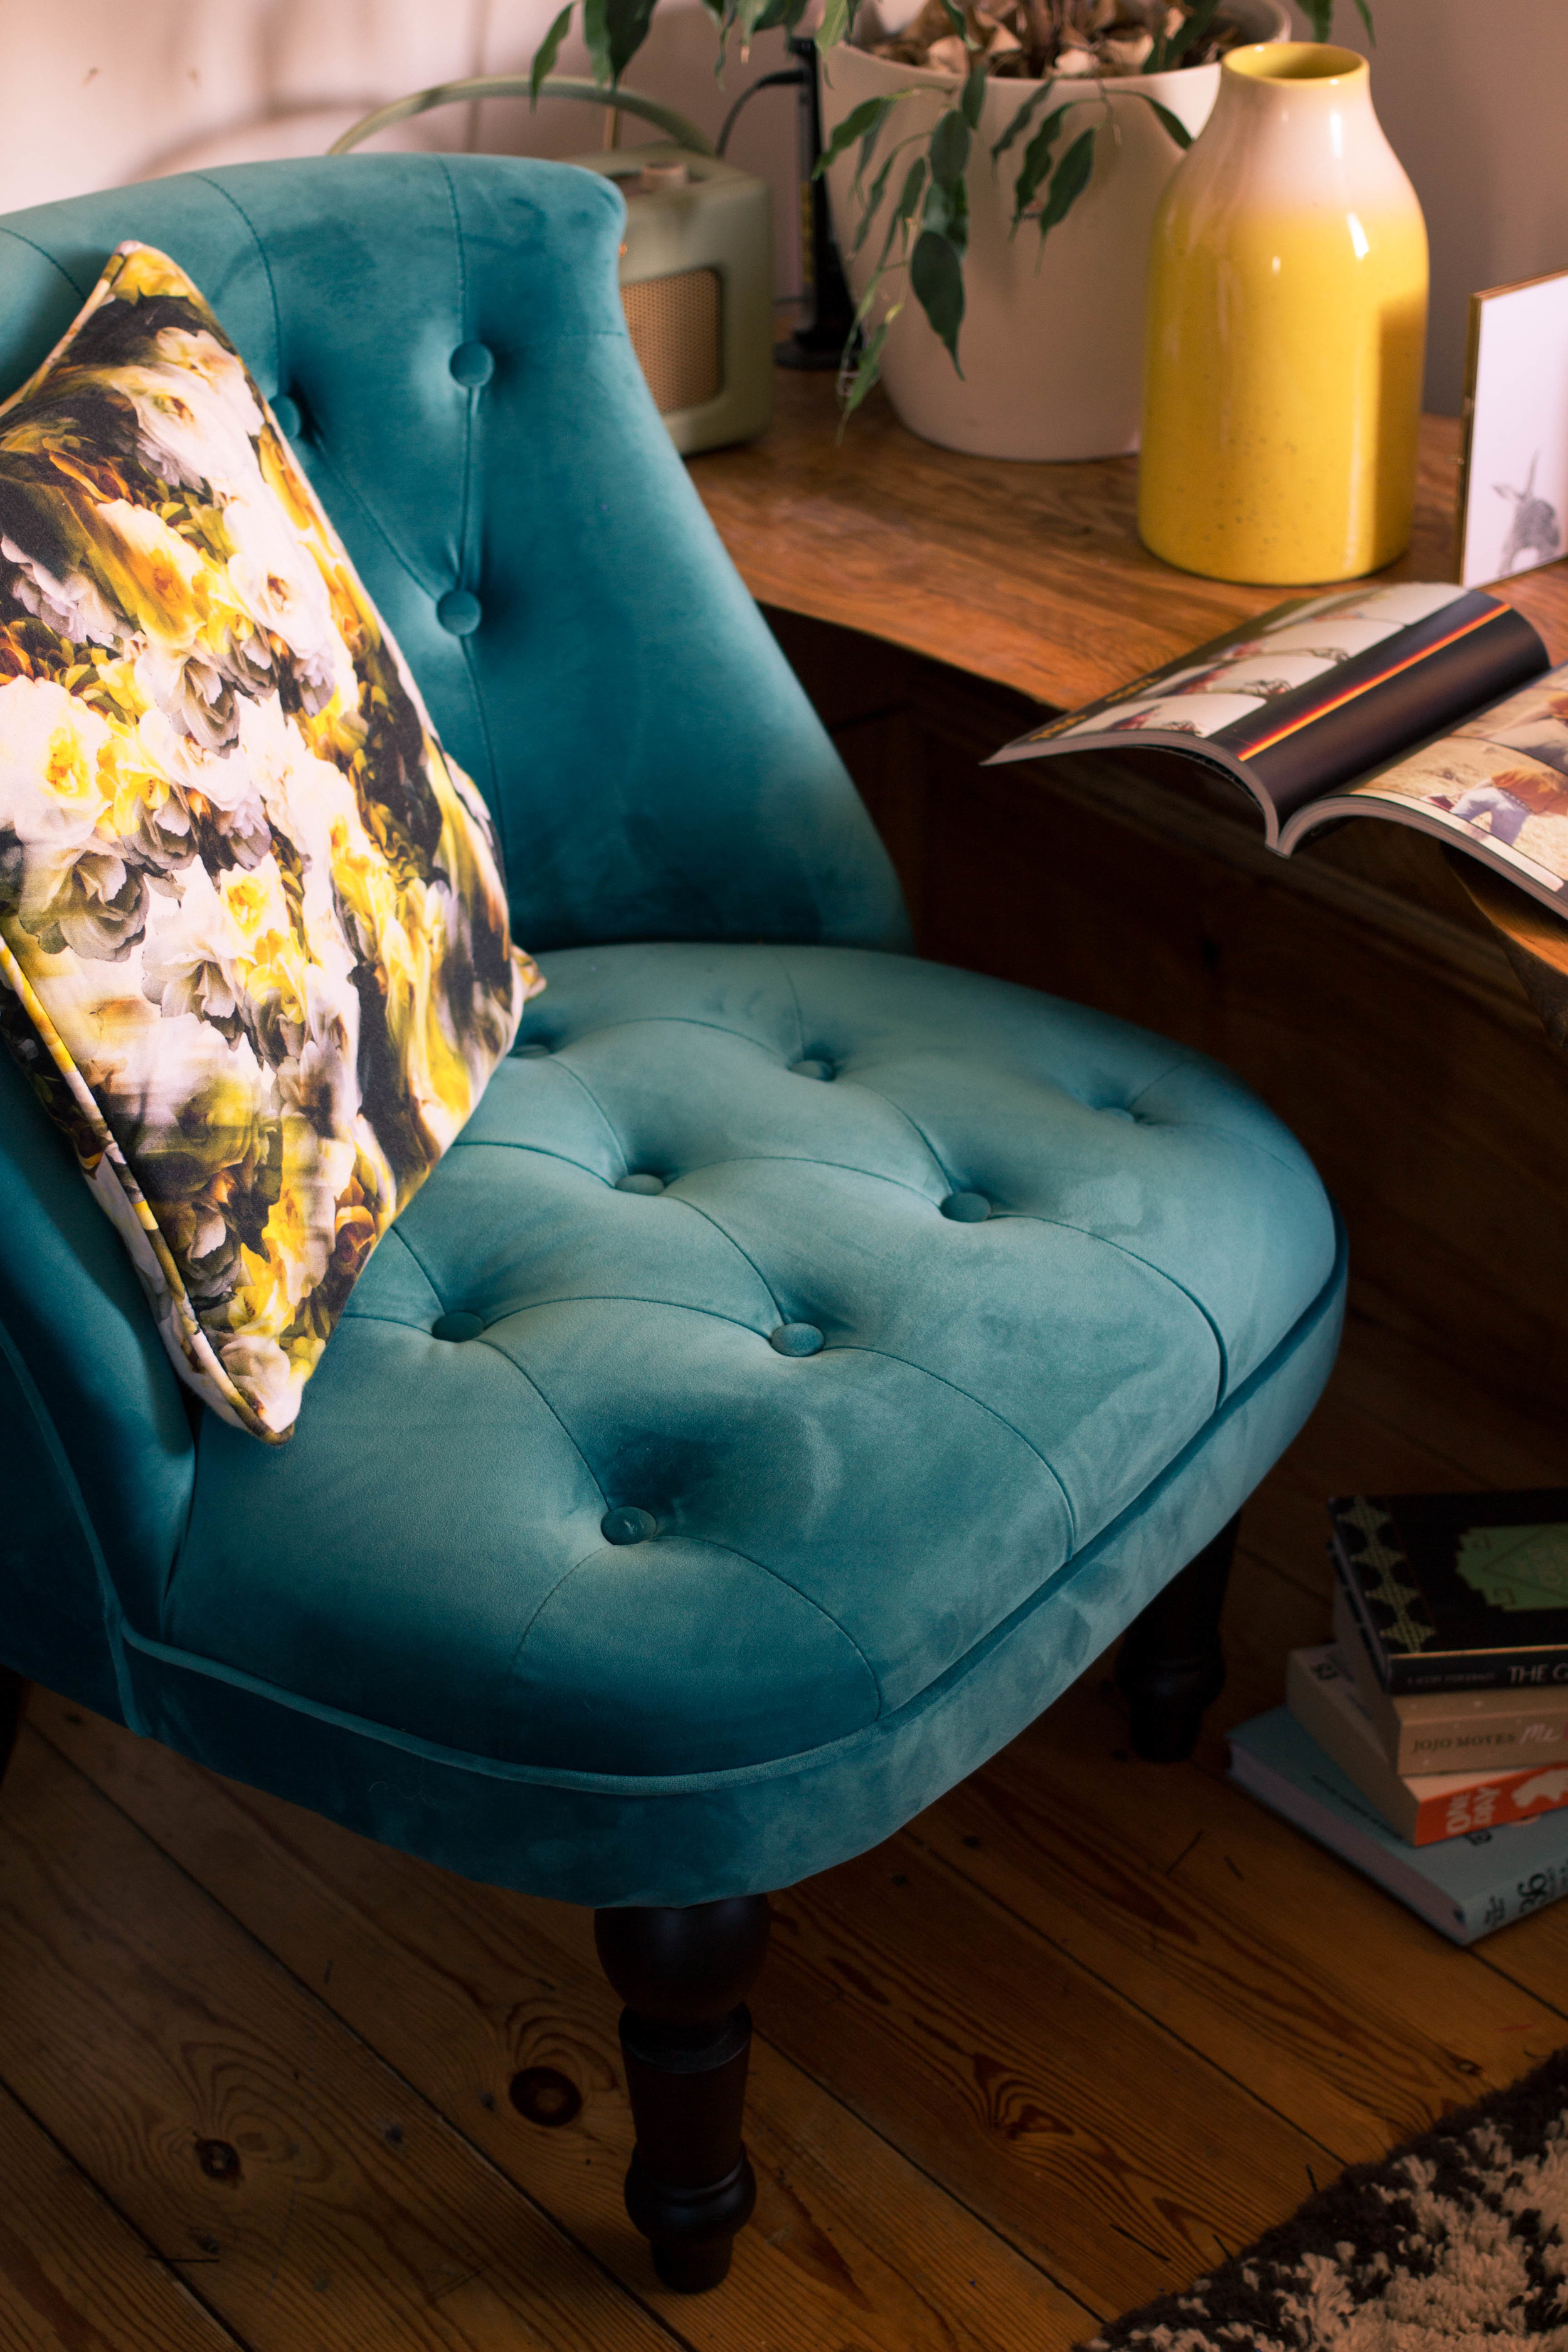 Styling-a-cosy-corner-rush-and-teal-11.jpg